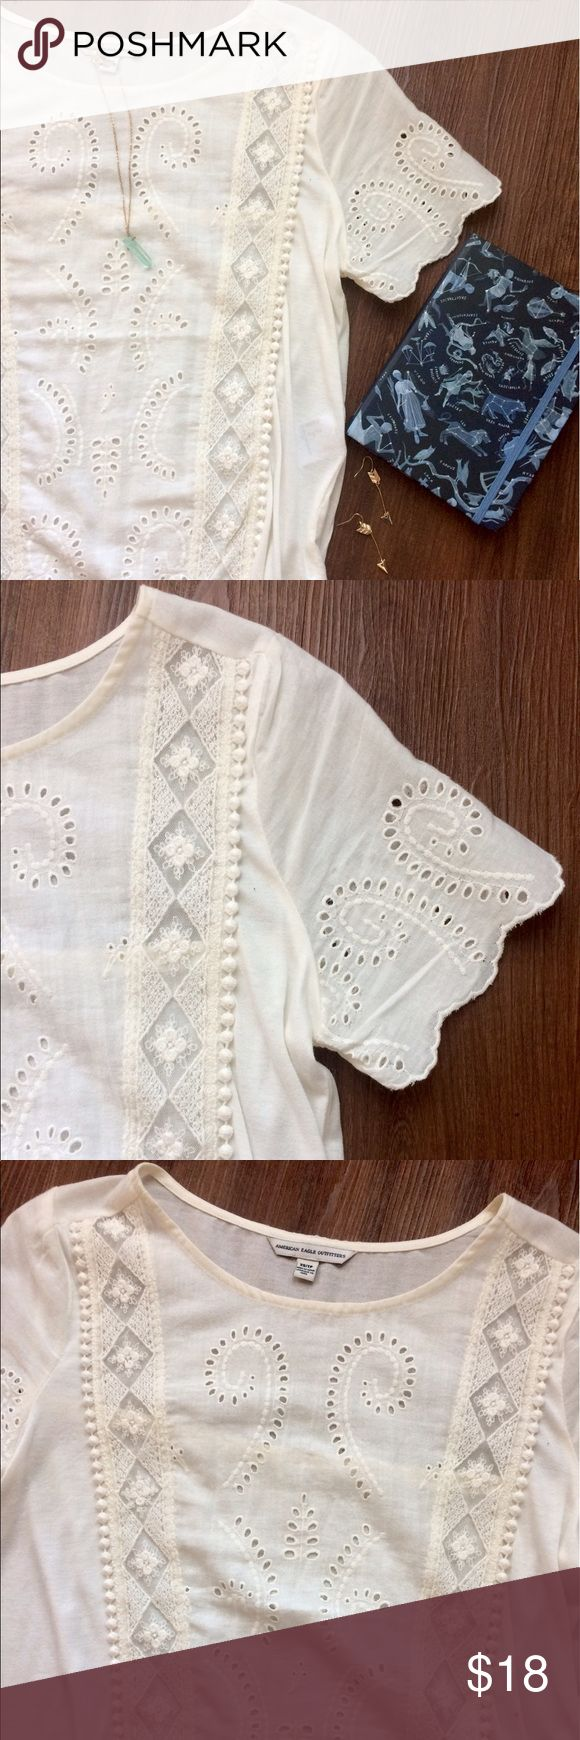 Bohemian White Cutout Shirt Bohemian White Cutout Shirt. Has floral lace paneling along the length and scalloped detailing on the sleeves. NEVER WORN, NWOT. Please make all offers through offer button! NO TRADES!! American Eagle Outfitters Tops